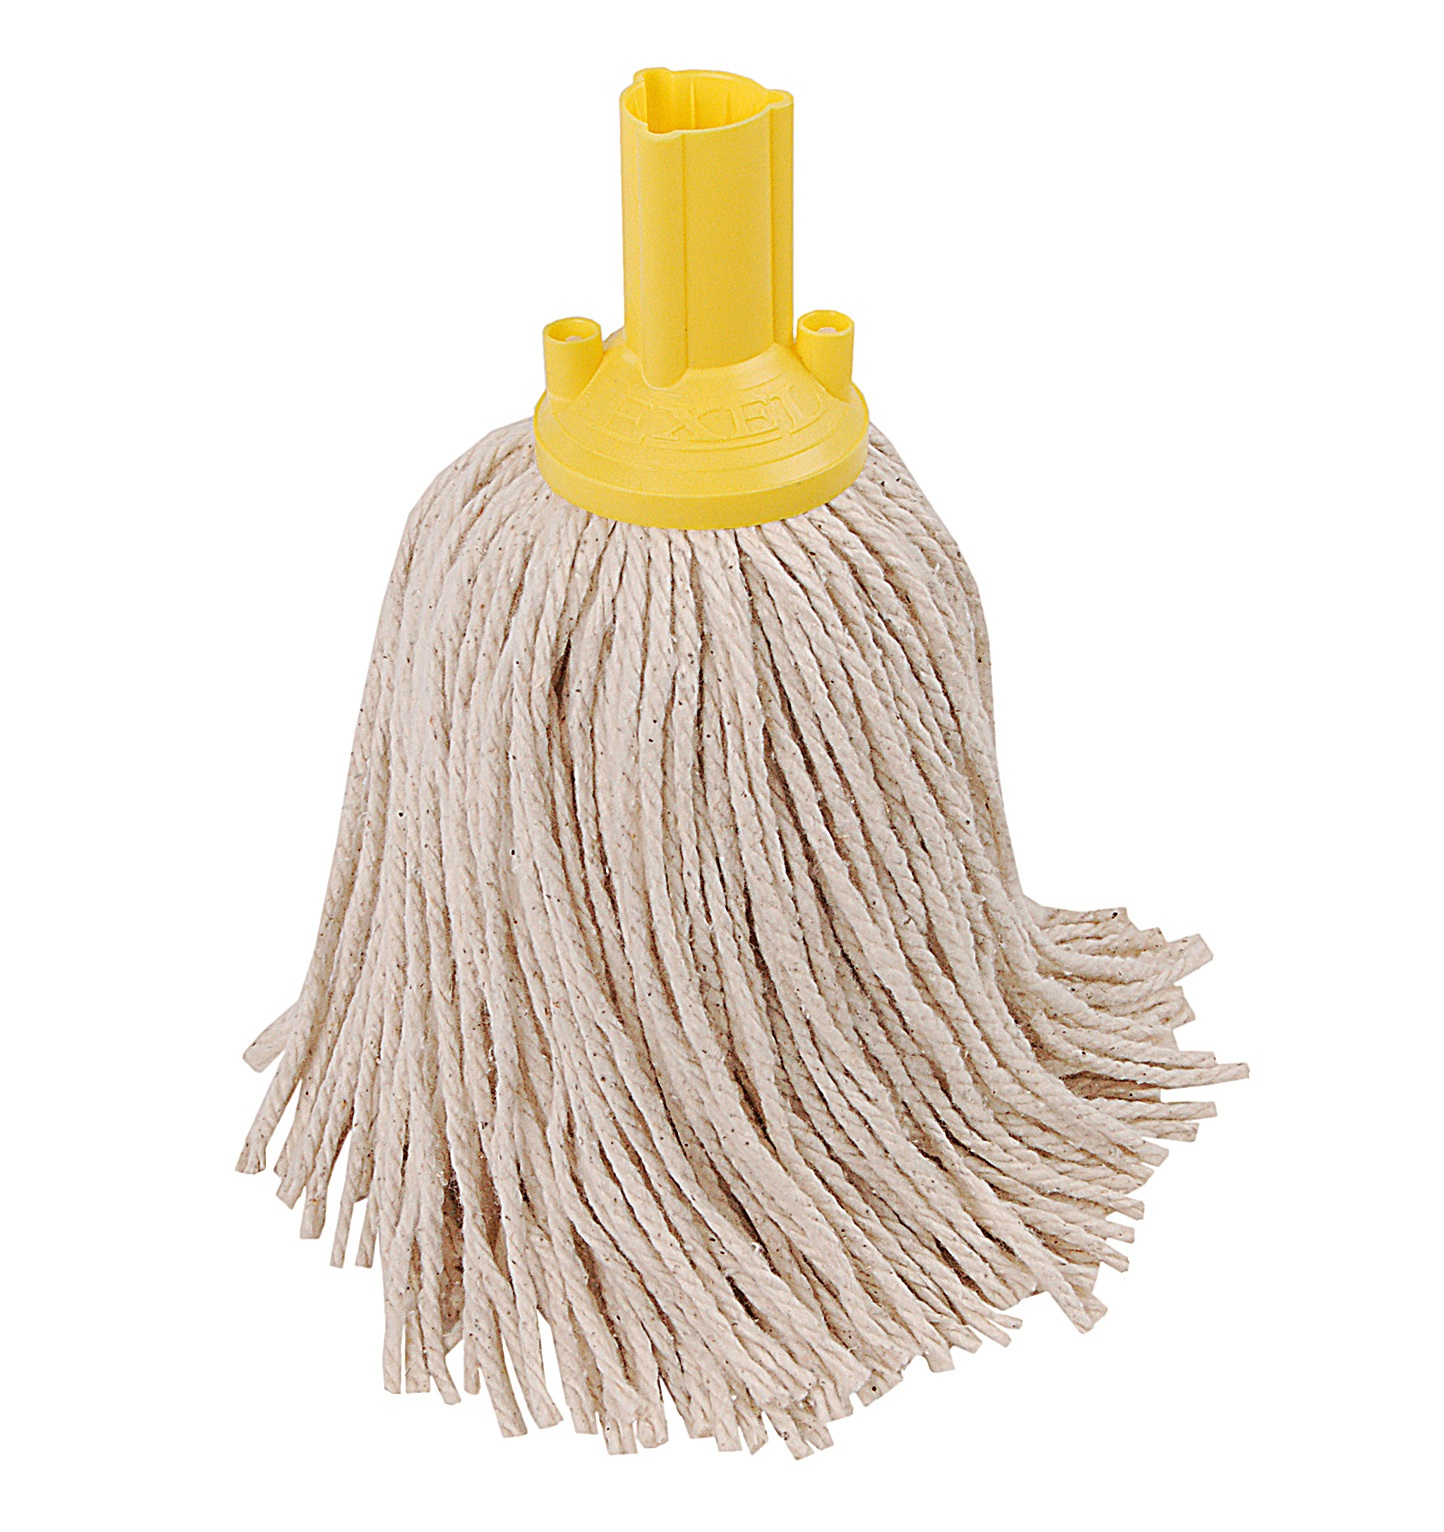 EXEL-200gm-PY-socket-mops-YELLOW--10-pack-